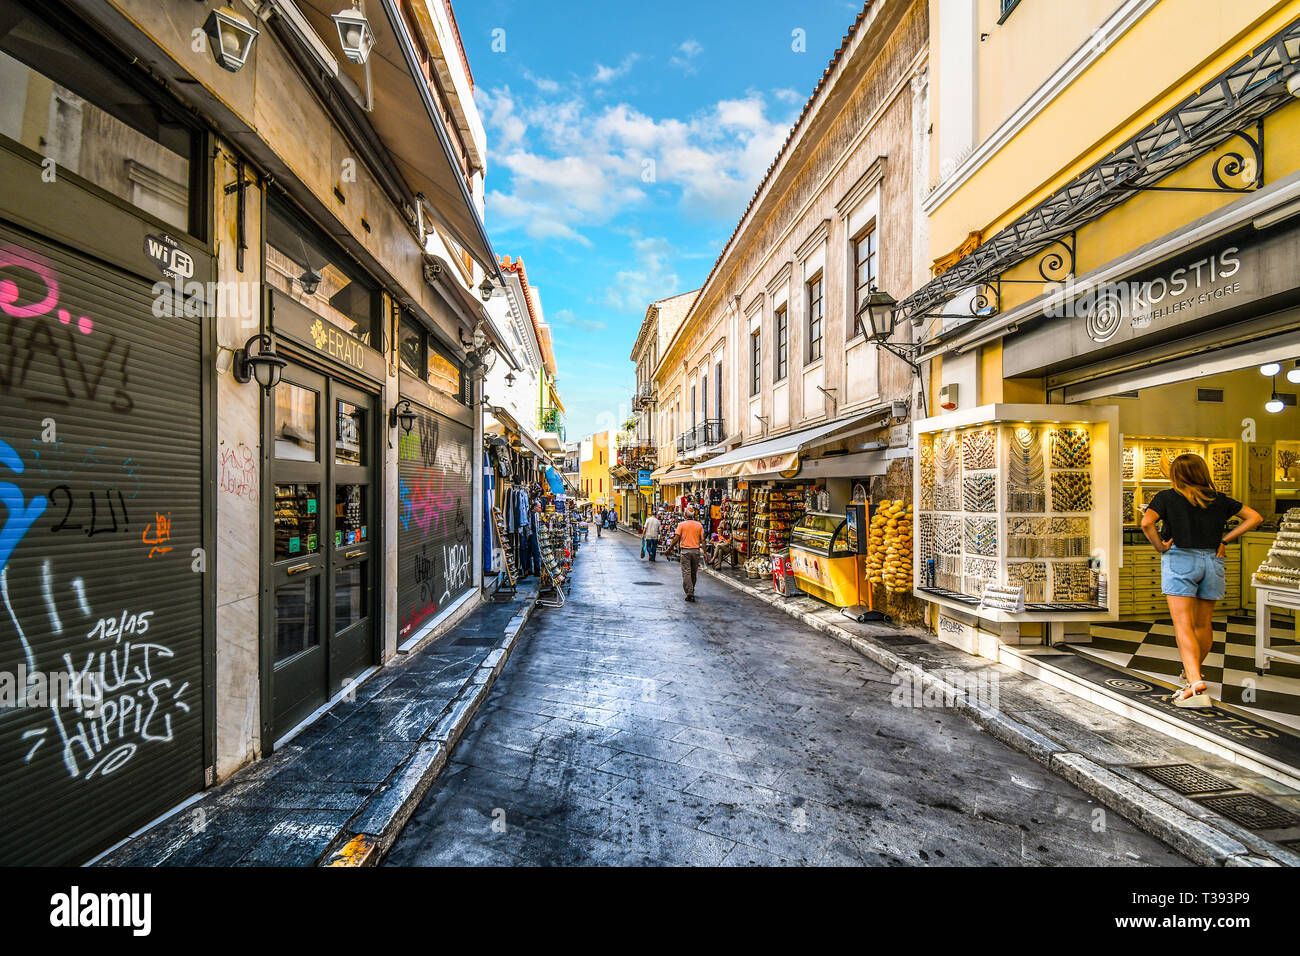 A typical touristy street and neighborhood in the Plaka District of Athens, Greece, with cafes, souvenirs and markets Stock Photo